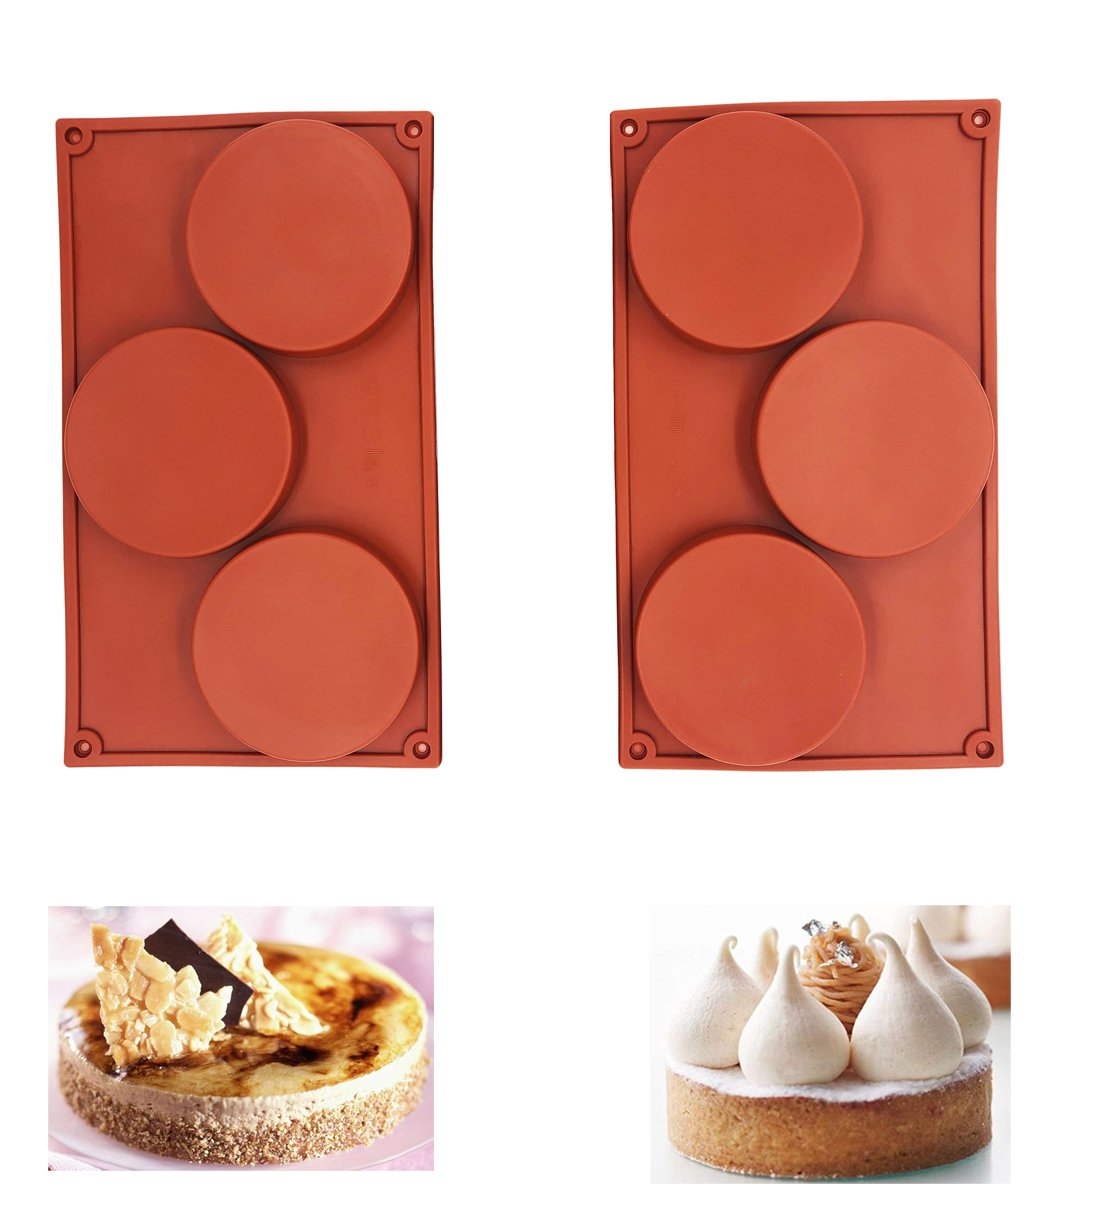 2Pcs/set 3-Cavity Large Round Disc Candy Silicone Mould Teacake Pastry Bakeware for Baking, Polymer Clay, Soap Making, Epoxy Resin, Jewelry Making, Crafting Projects